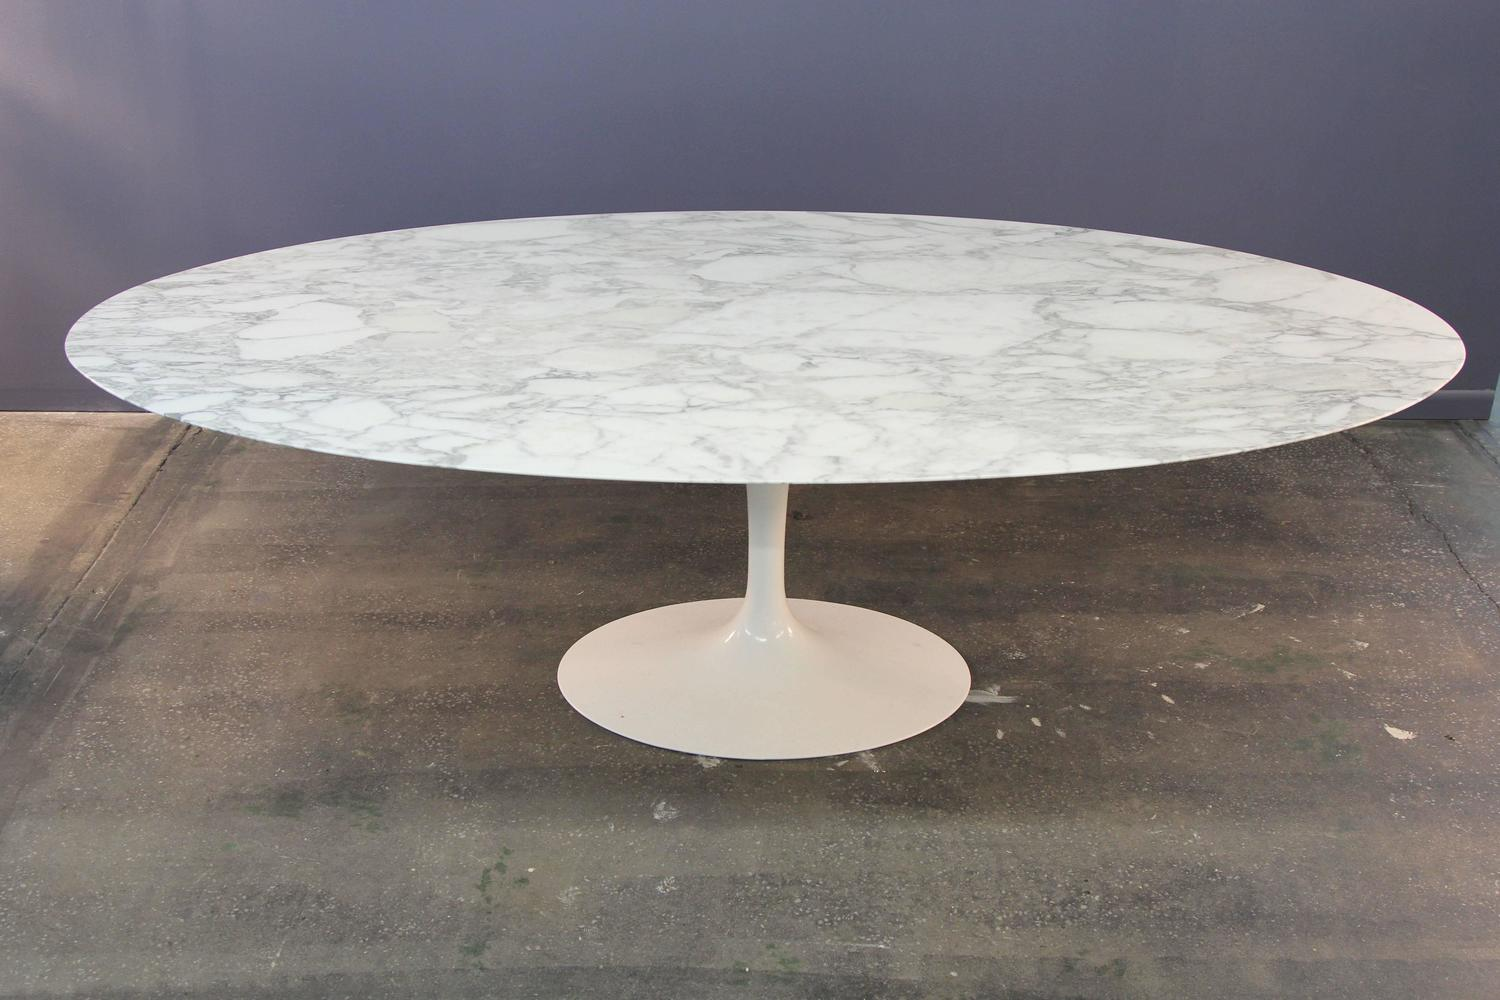 eero saarinen marble top oval dining table for knoll at. Black Bedroom Furniture Sets. Home Design Ideas